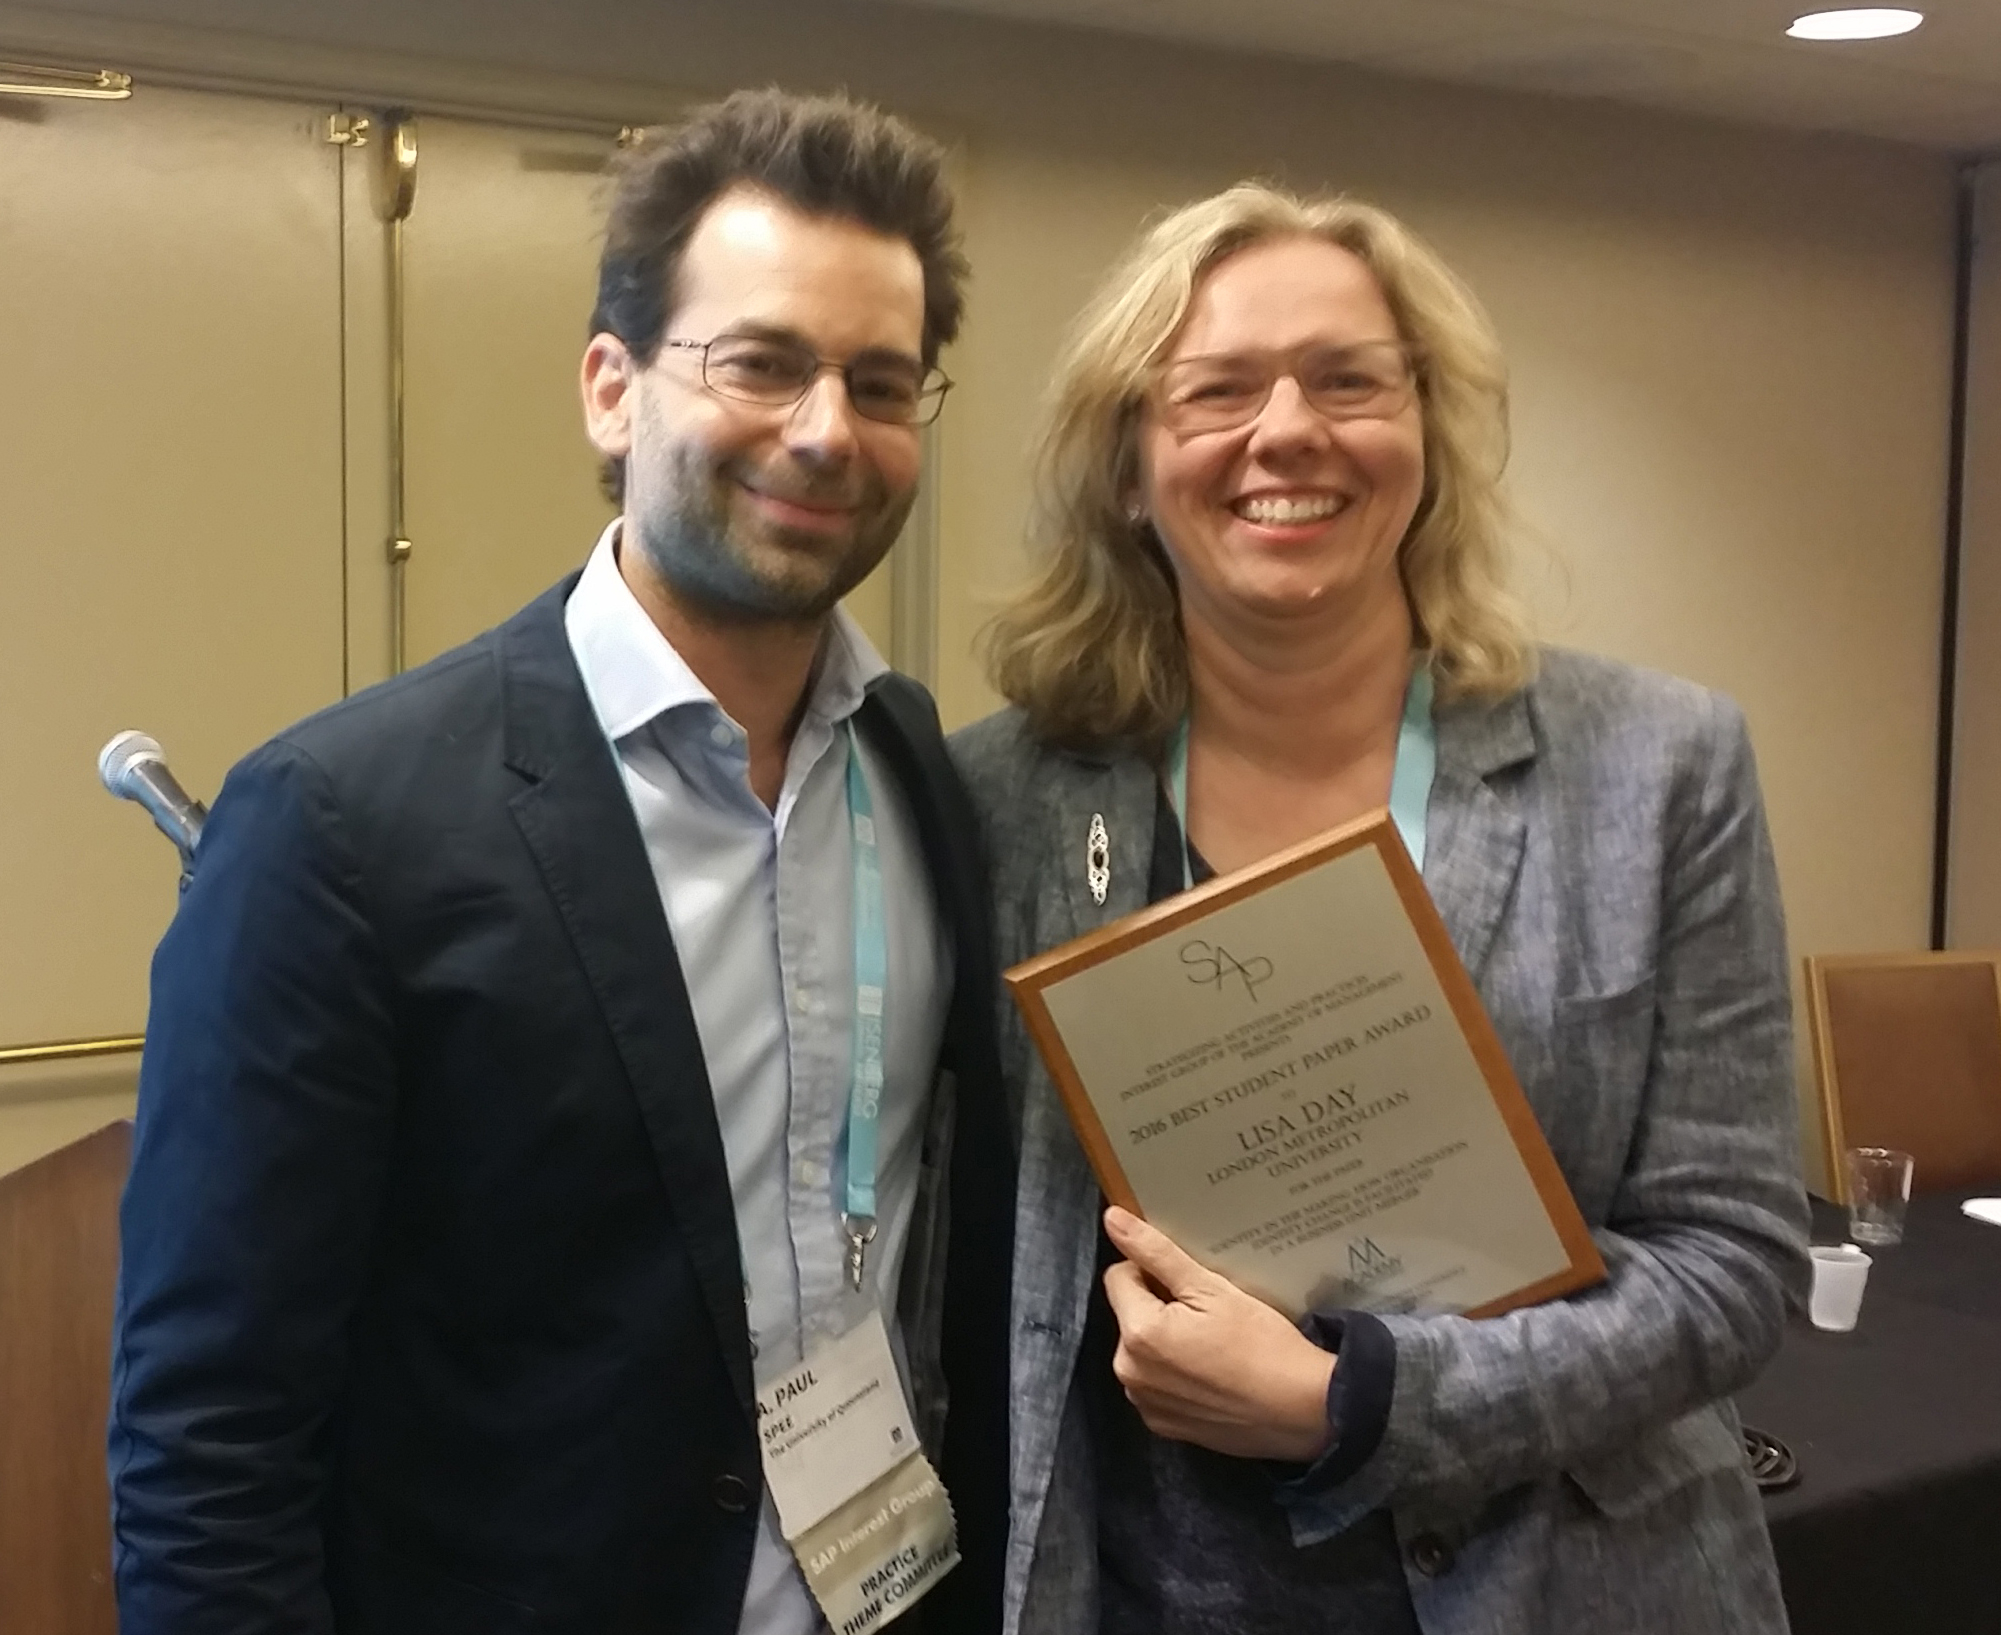 Copy of SAP Best Student Paper - Paul Spee, Lisa Day(1)